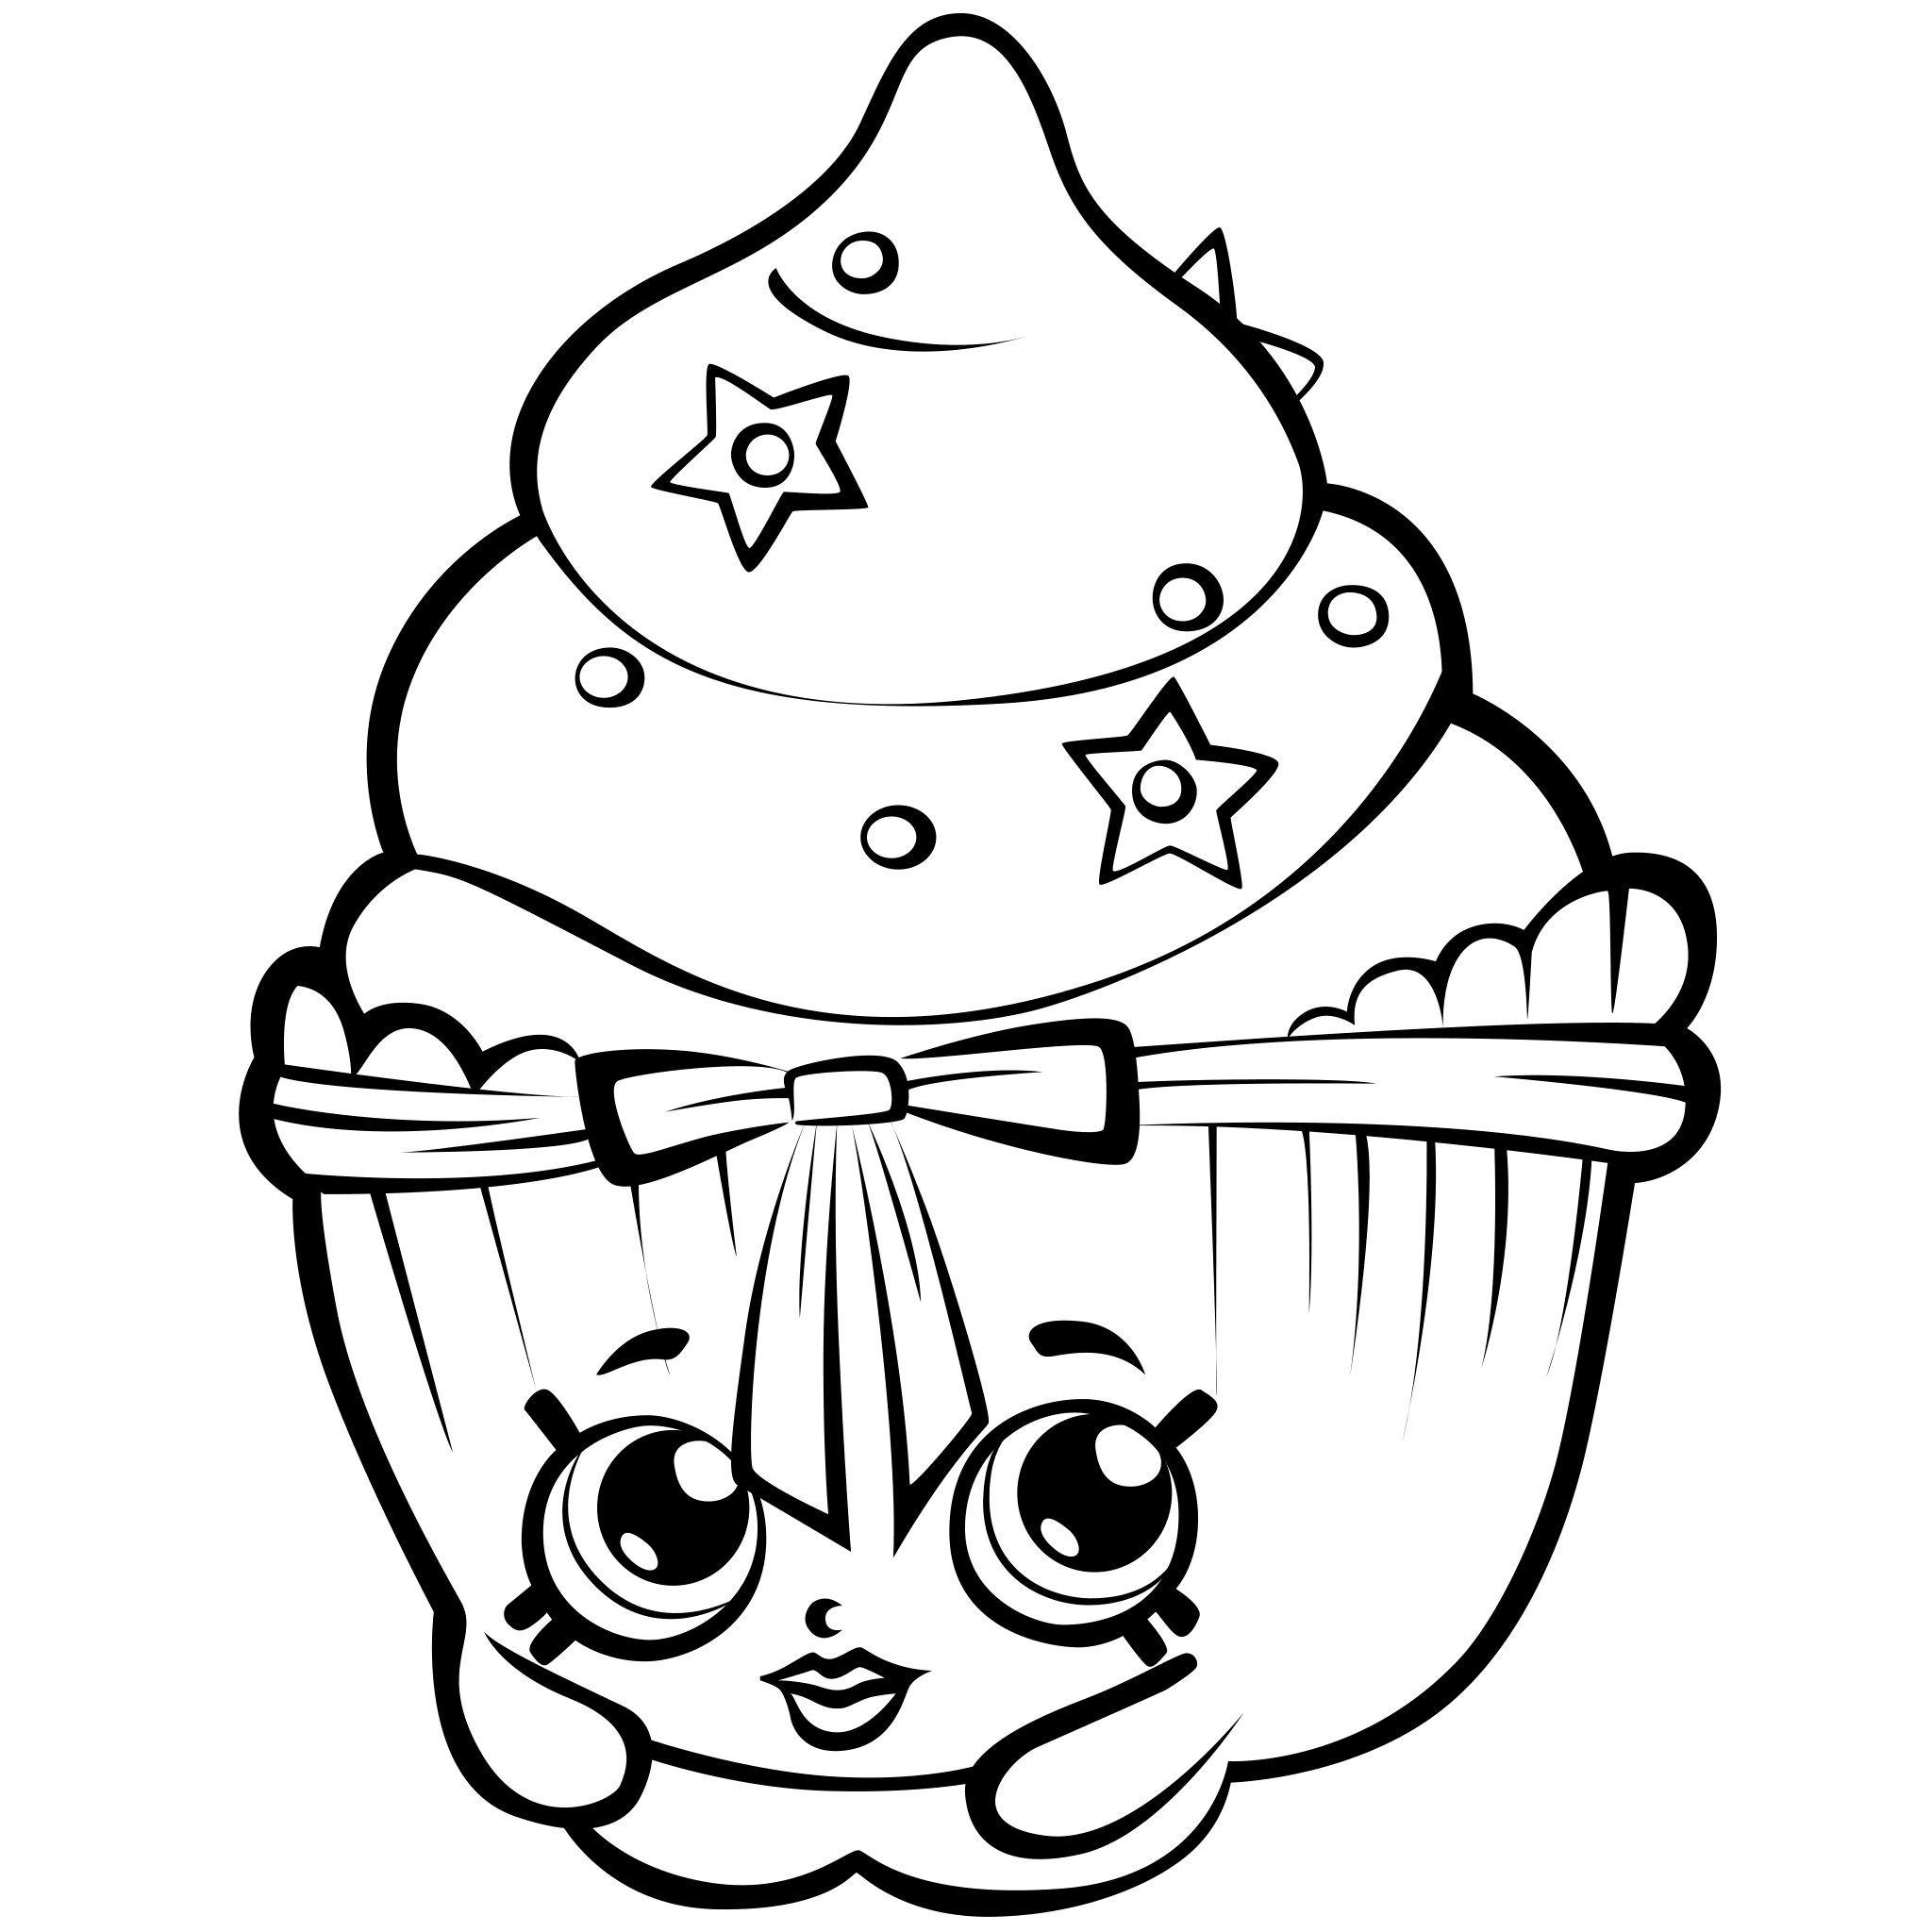 Shopkins Coloring Pages To Print Shopkins Coloring Pages Best